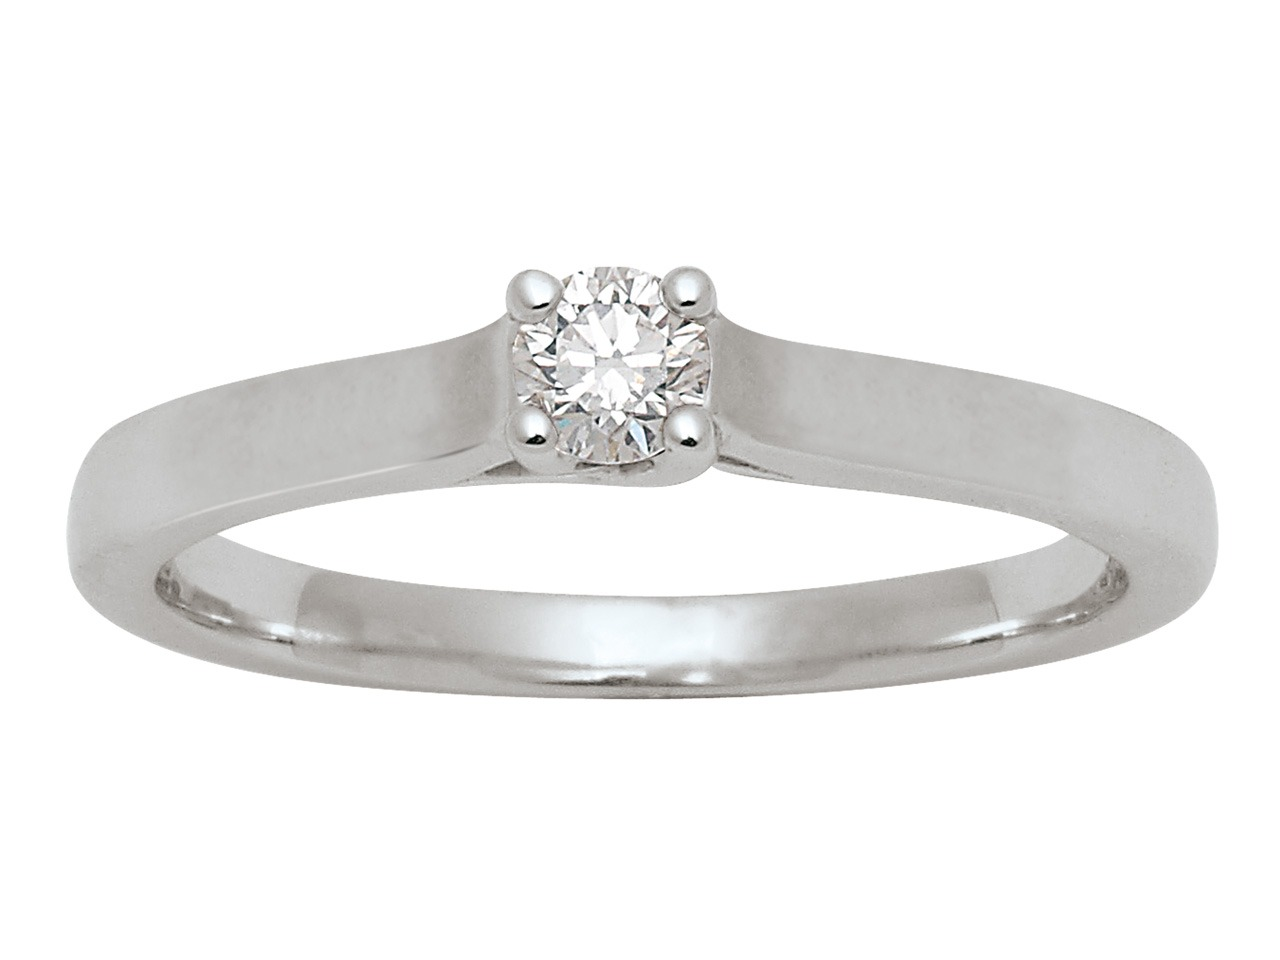 Bague Solitaire, or gris 18k, diamants 0,15 ct, doigt 54